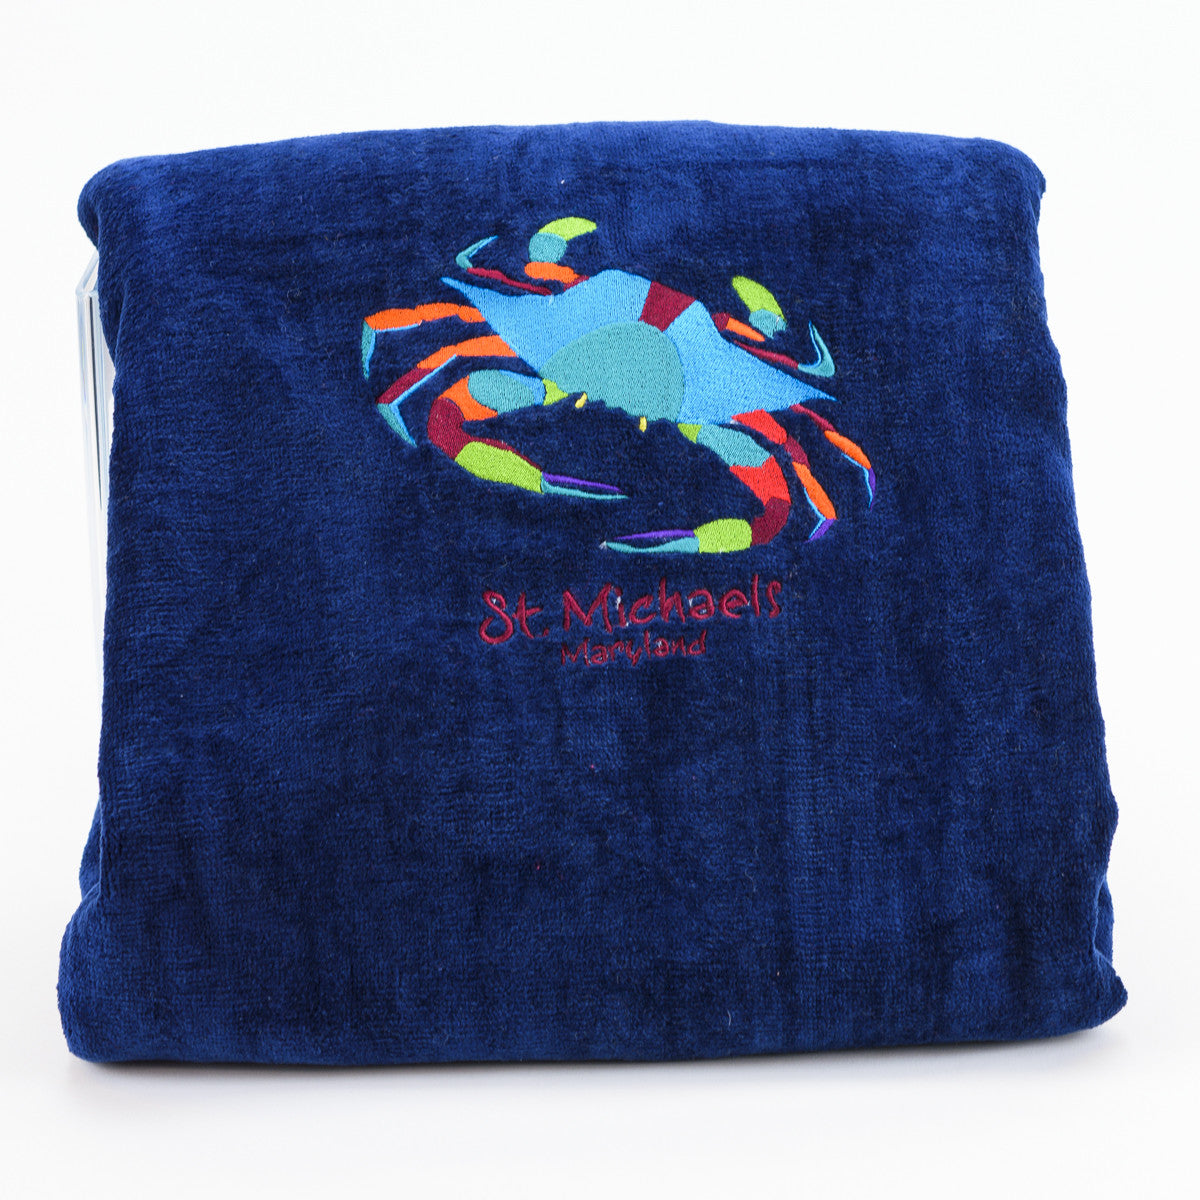 Embroidered SM Crab Beach Towel - Navy Blue